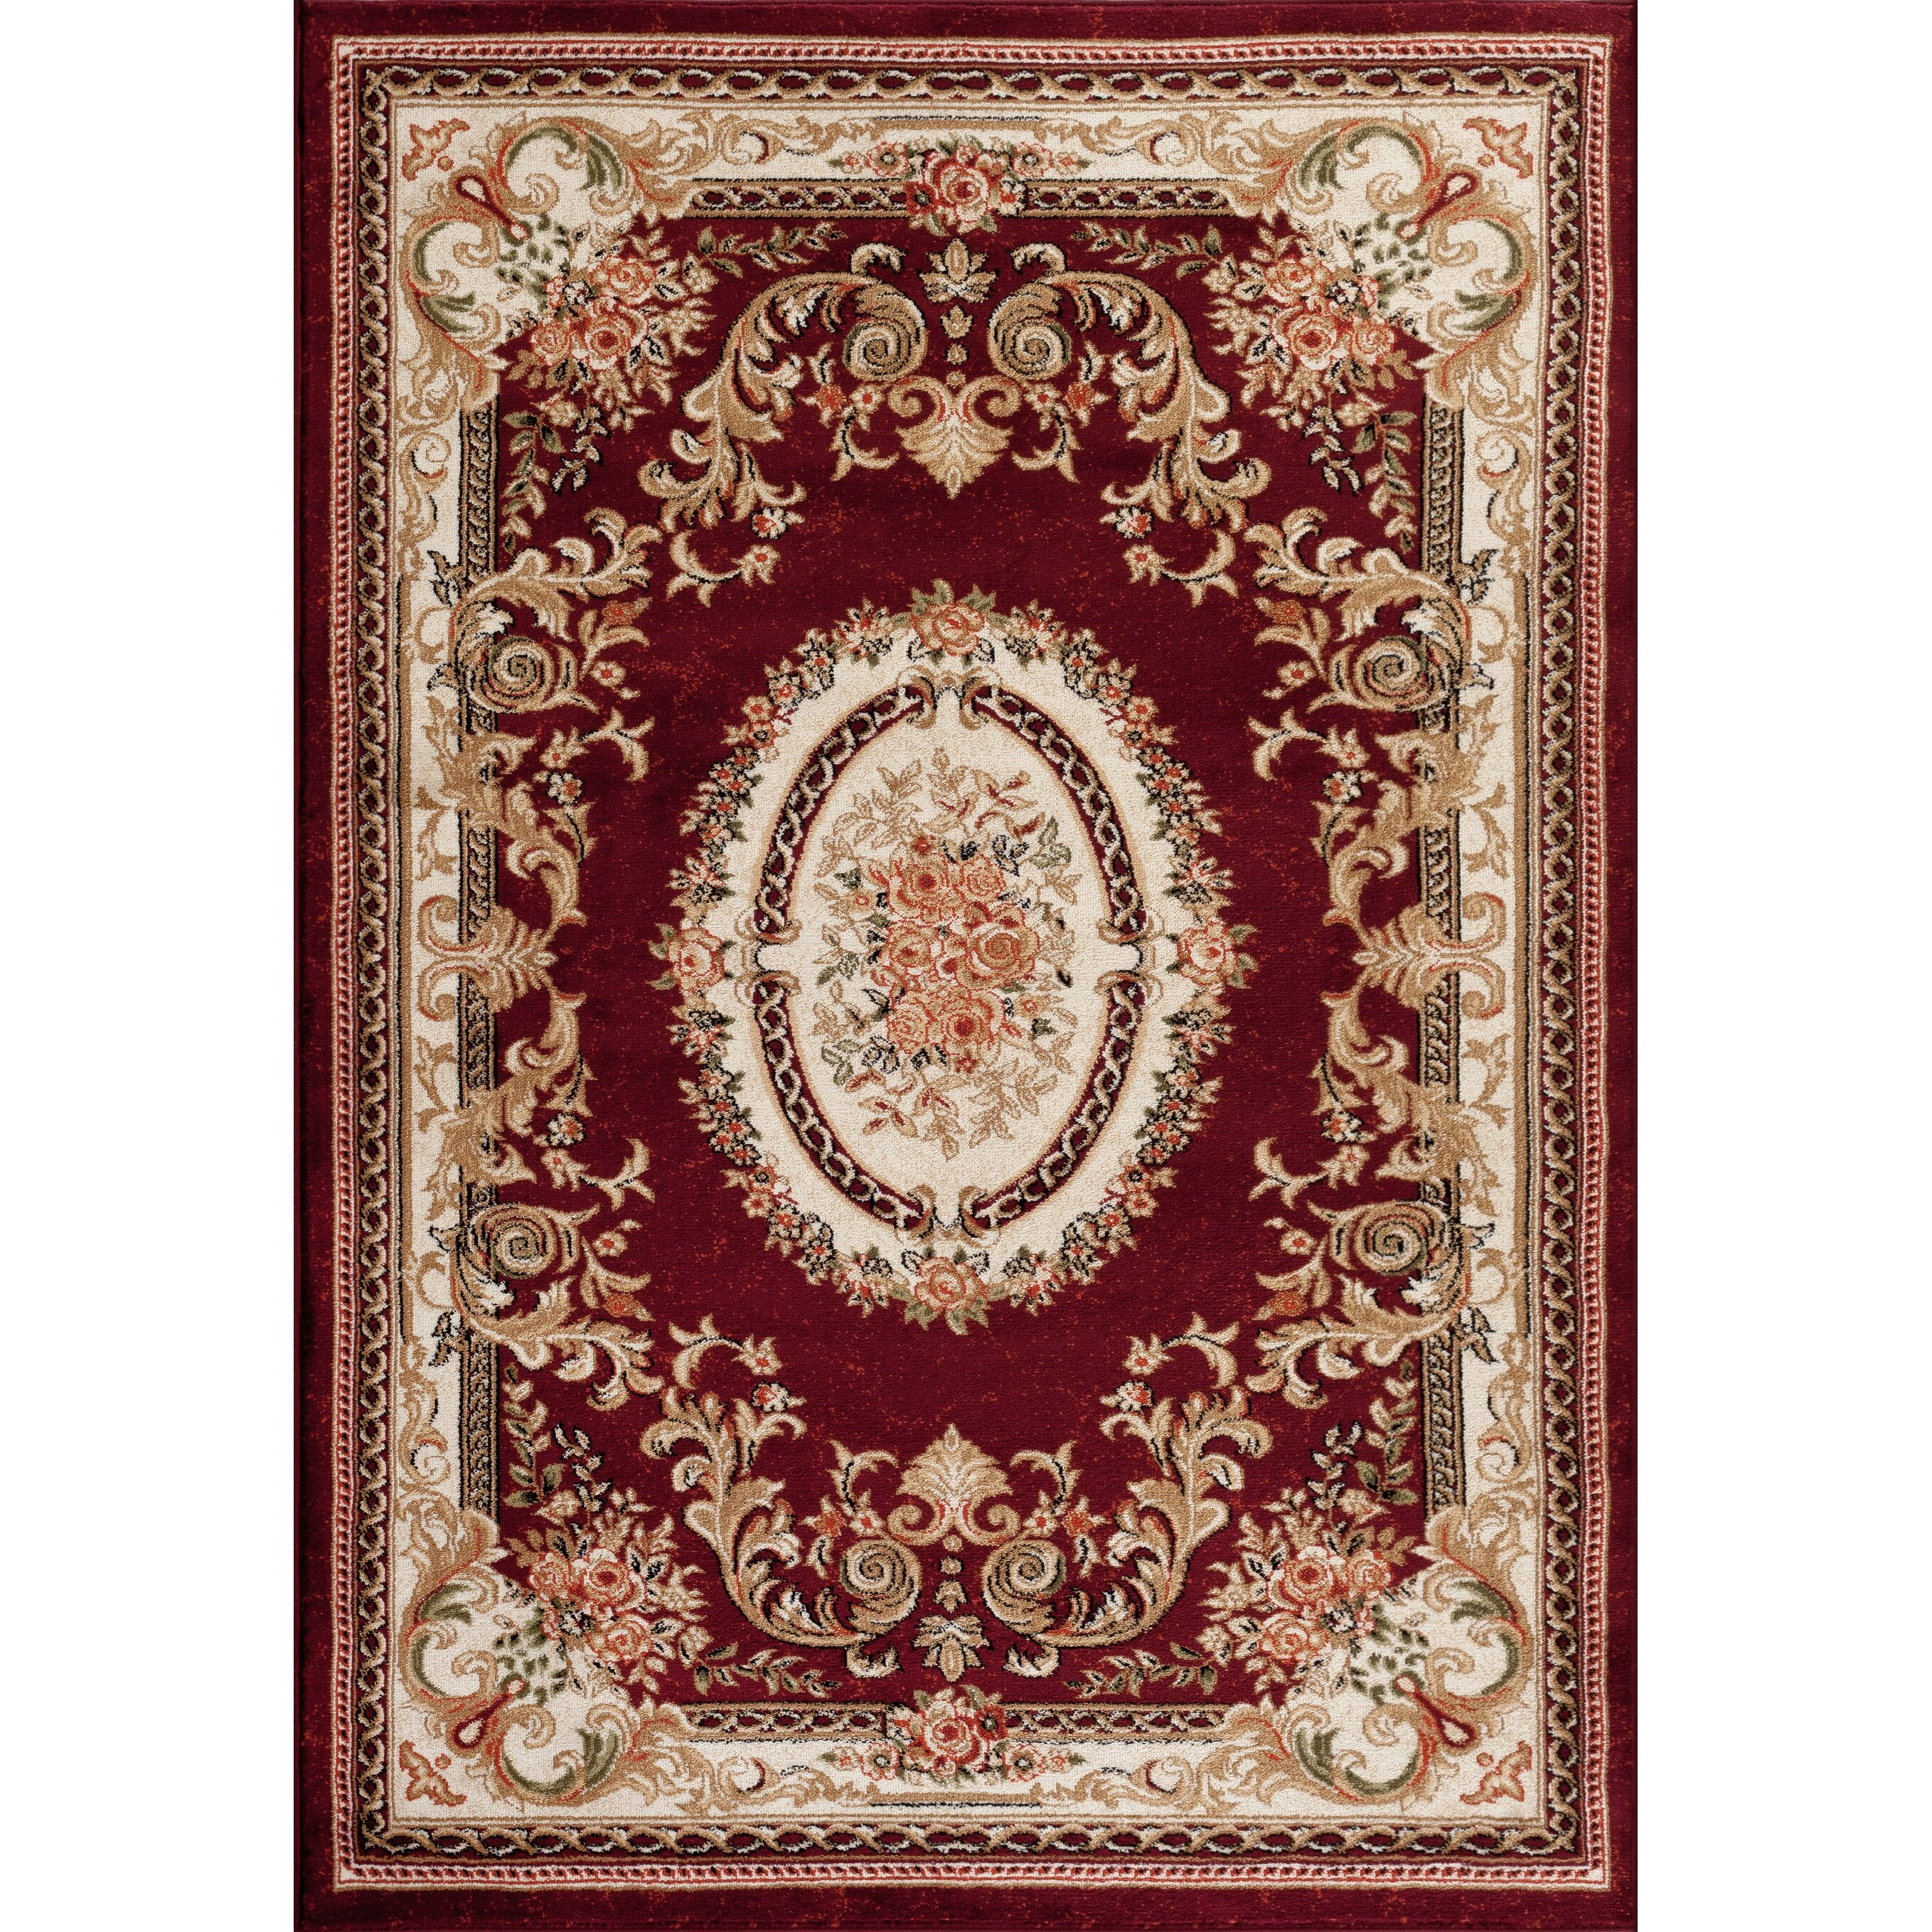 Persian-rugs Tobis Traditional Burgundy Area Rug & Reviews